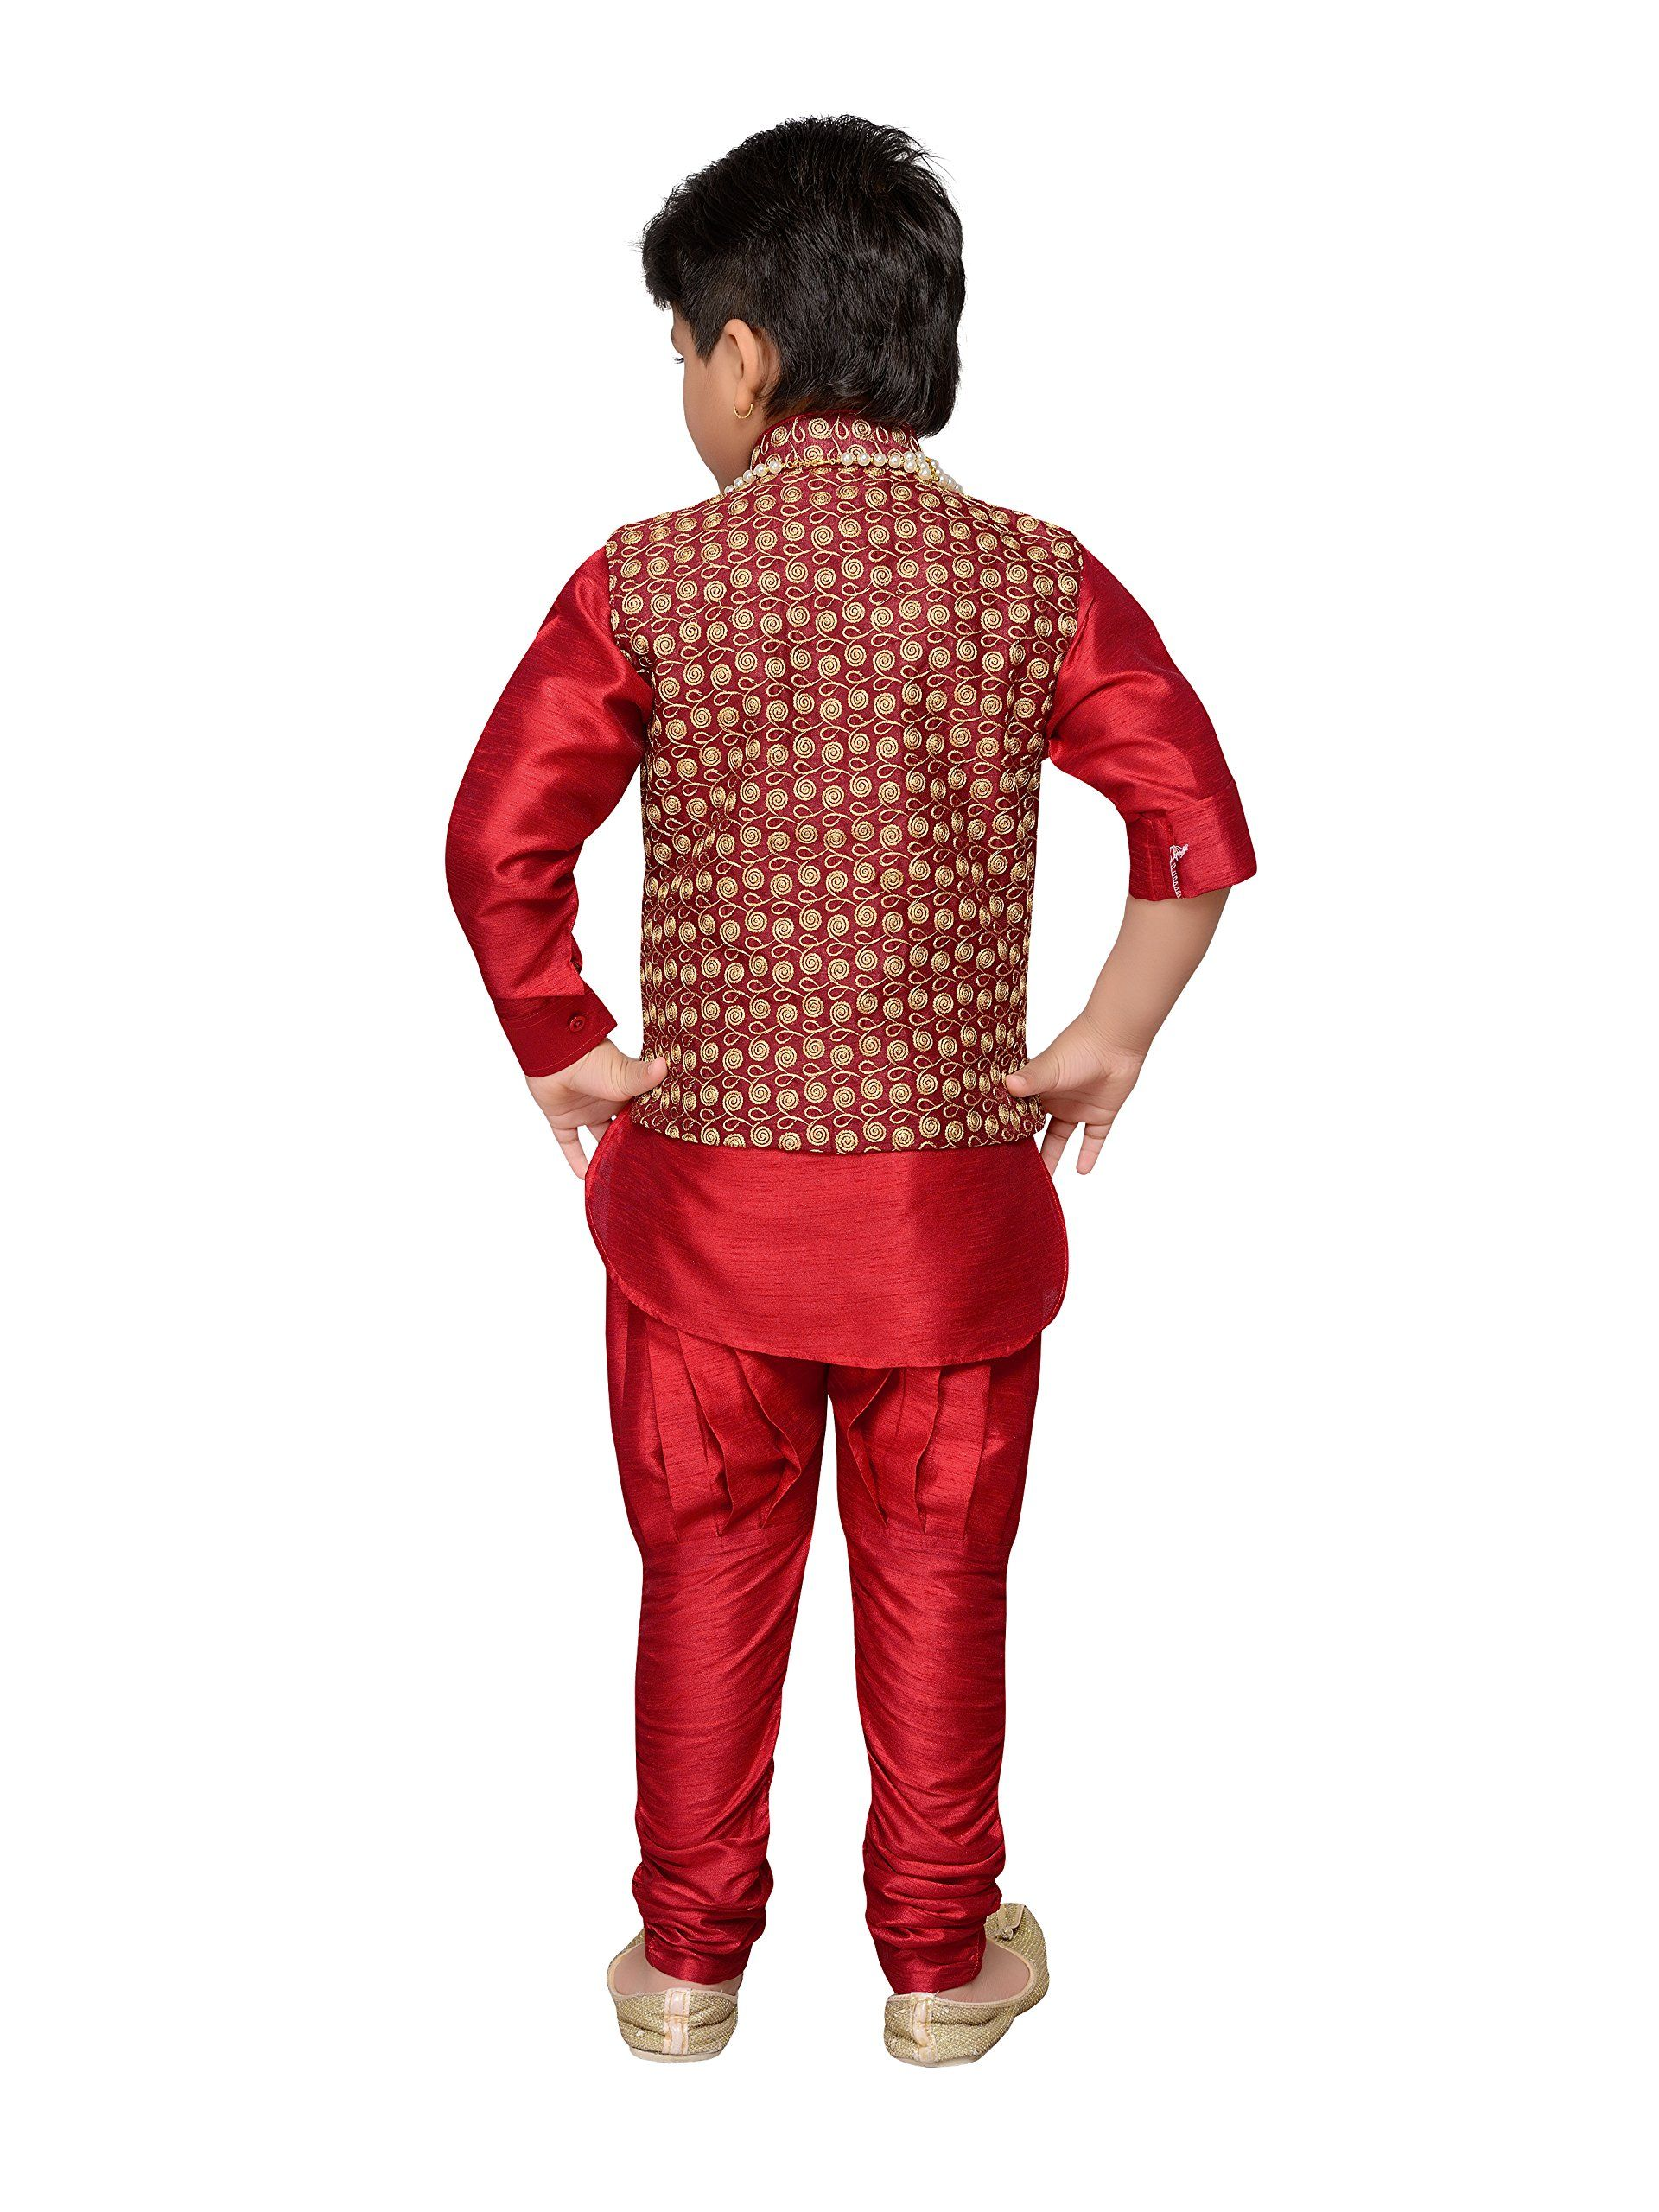 d7deec5ec6 AJ Dezines Kids Indian Wear Bollywood Style Kurta Pyjama Waistcoat with  Necklace for Baby Boys 850MAROON1 >>> Learn more by going to the photo web  link.